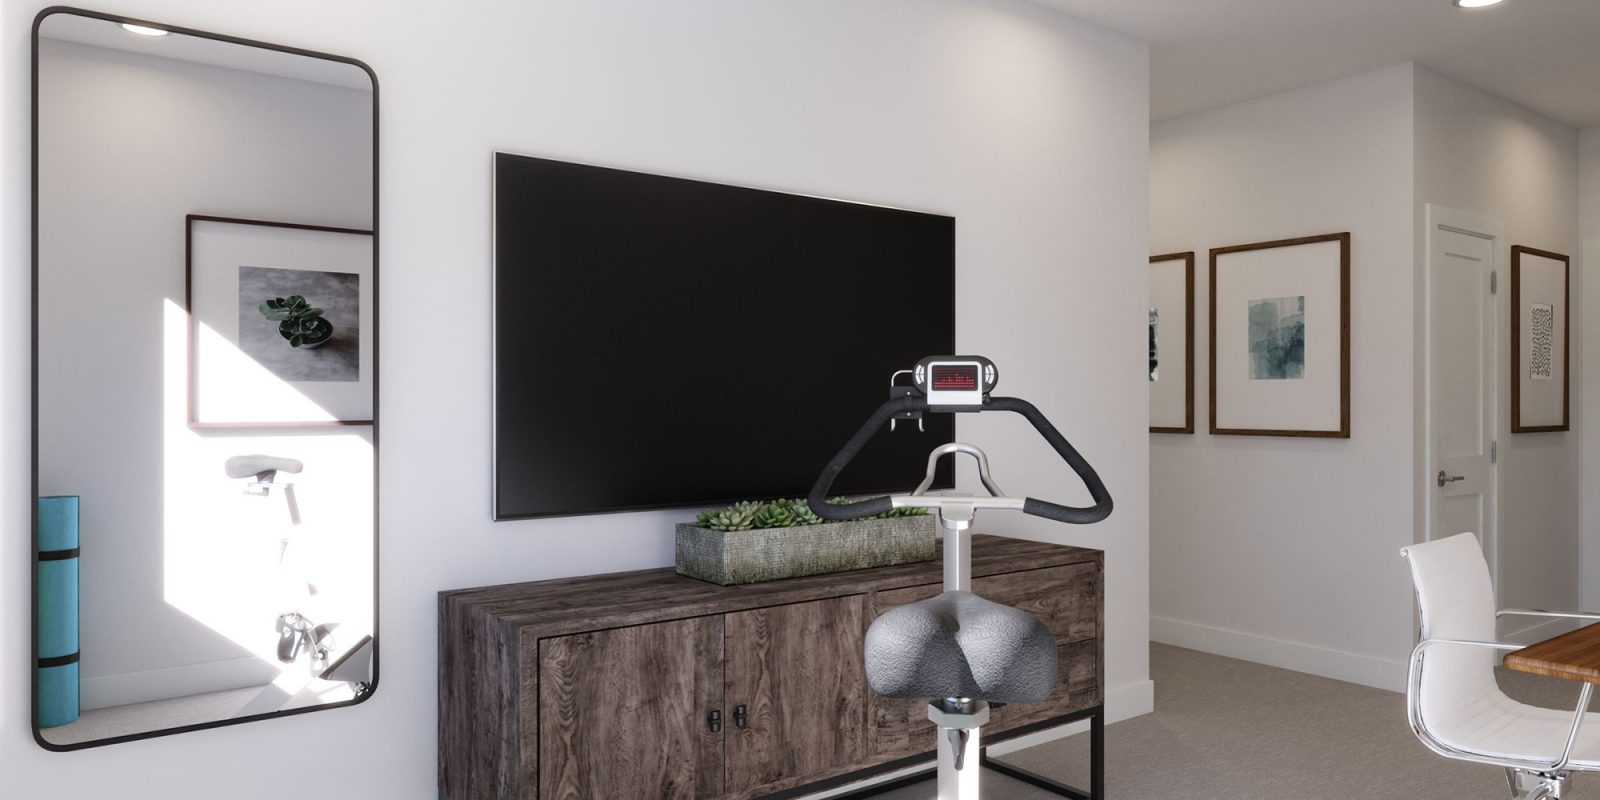 Baseline DoMore Rows: Haven - Upstairs Loft